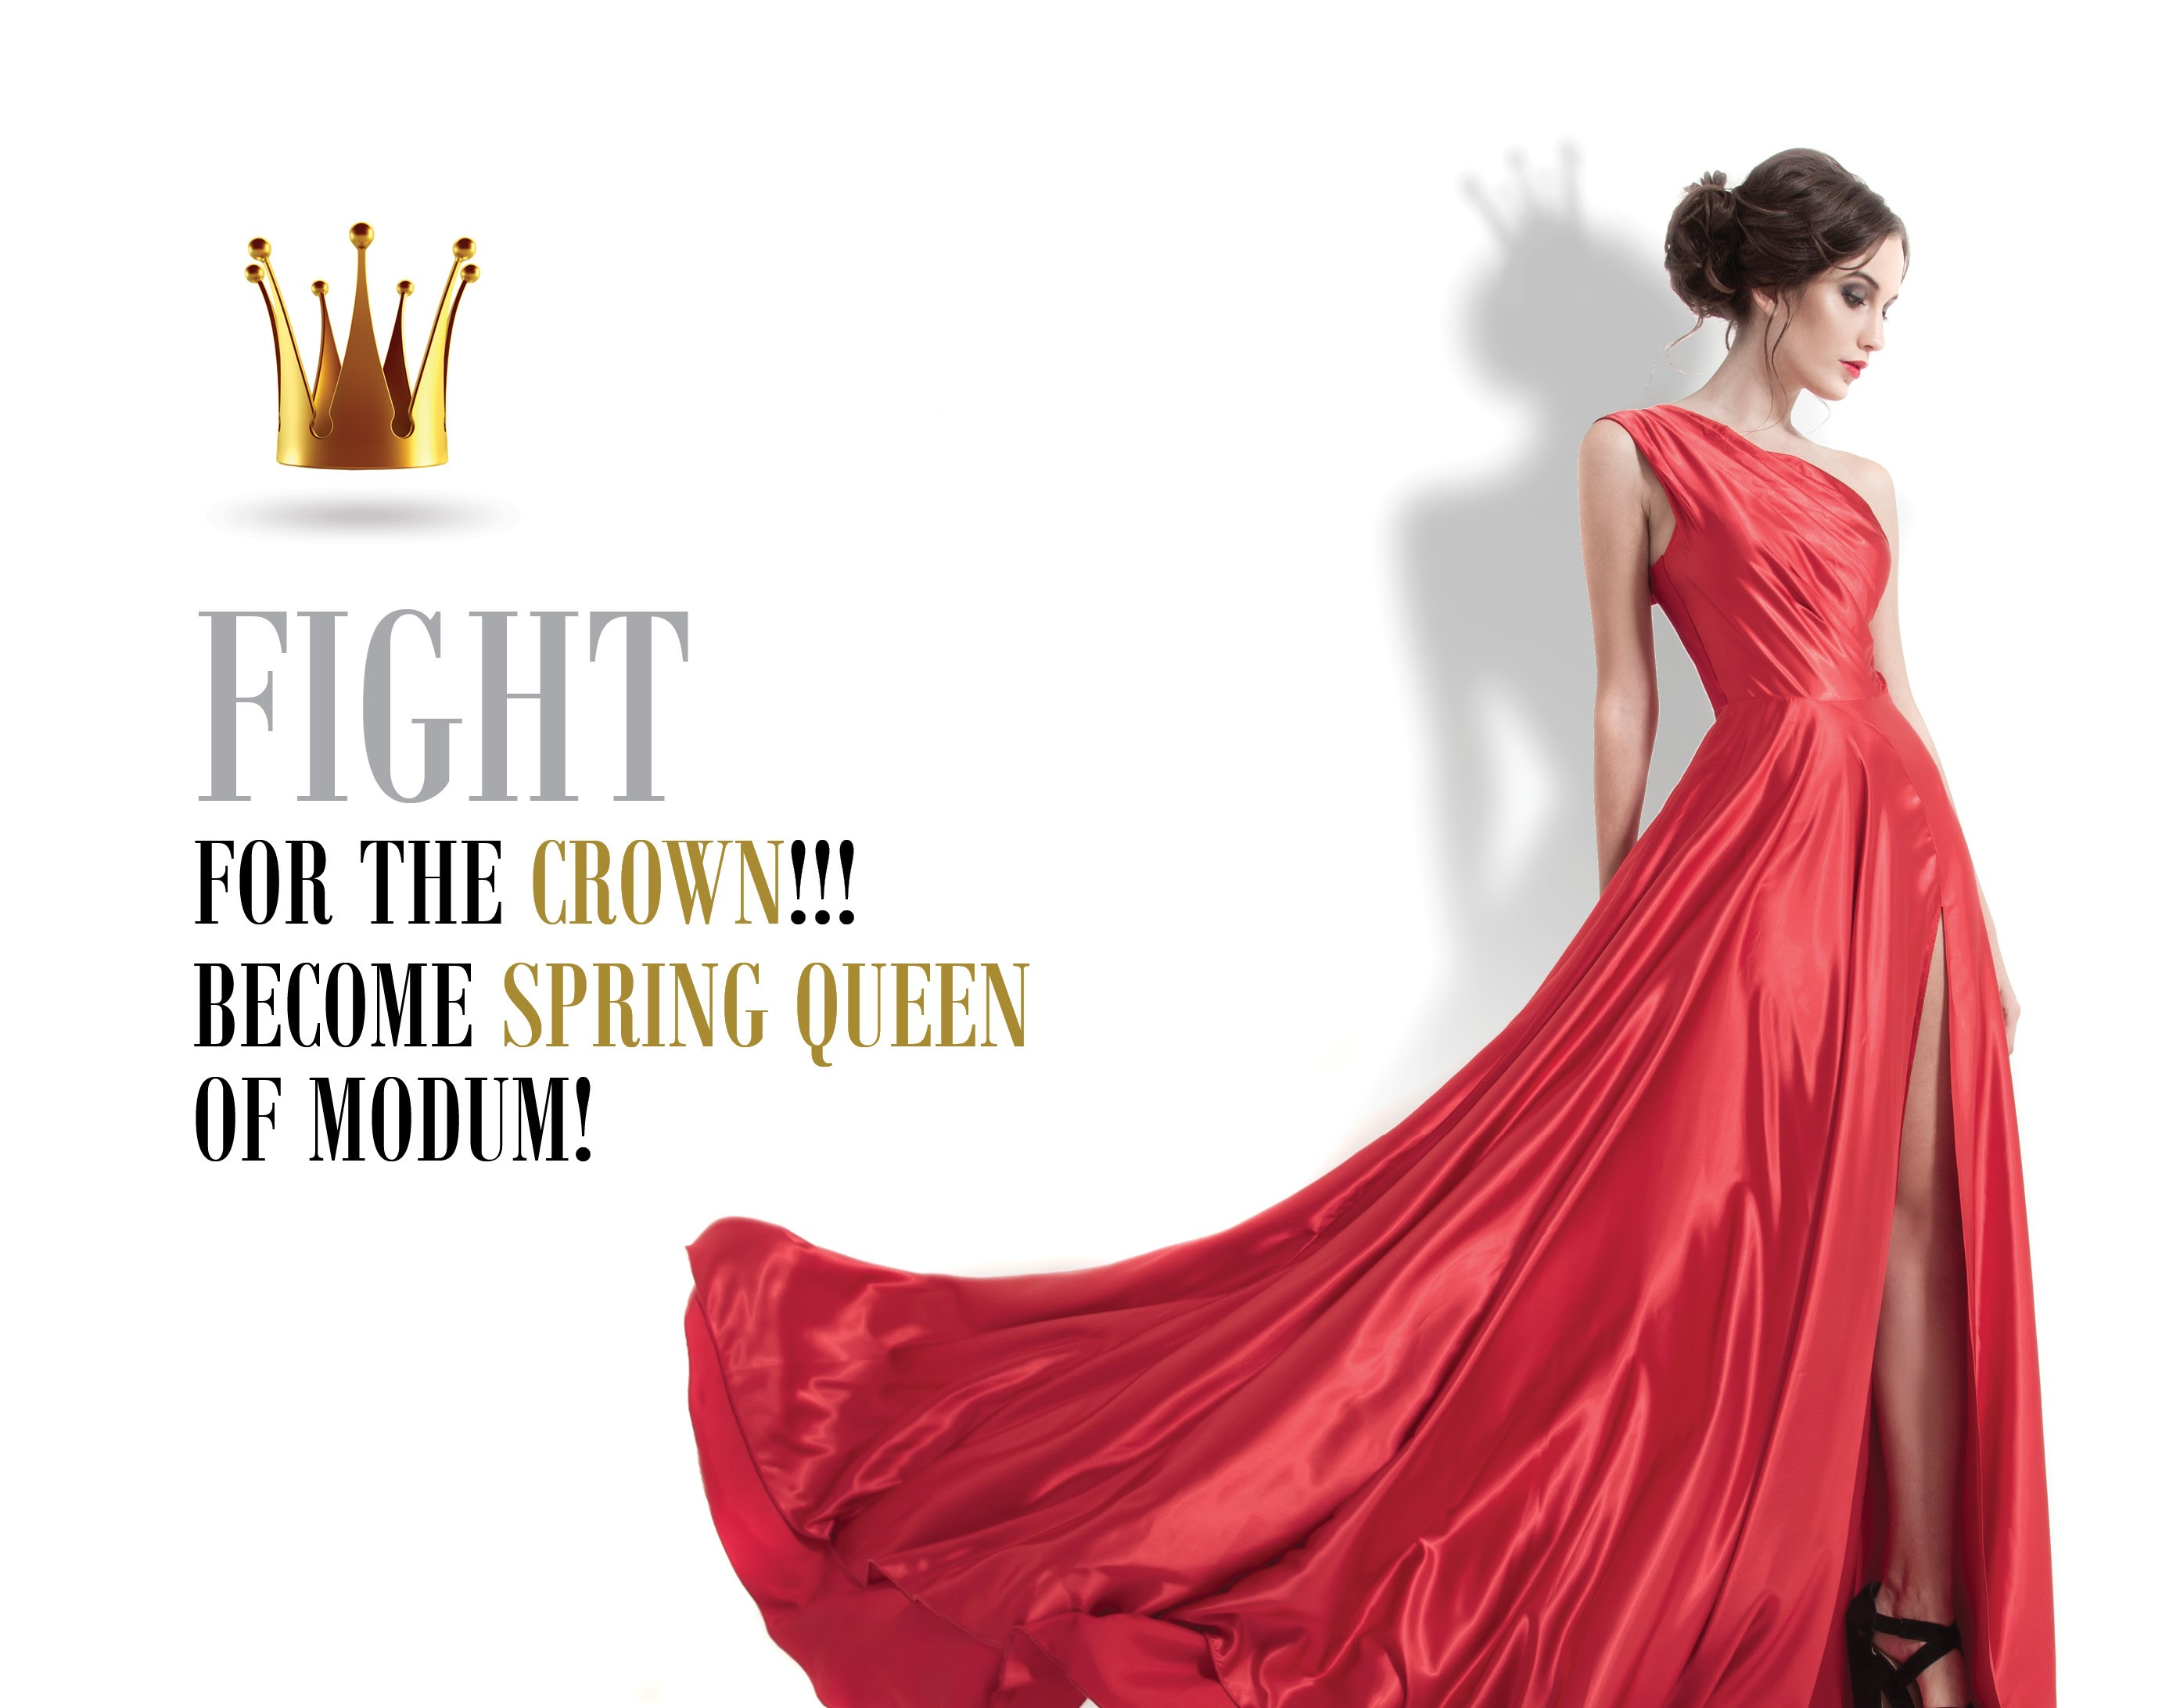 Fight for the Crown!!!